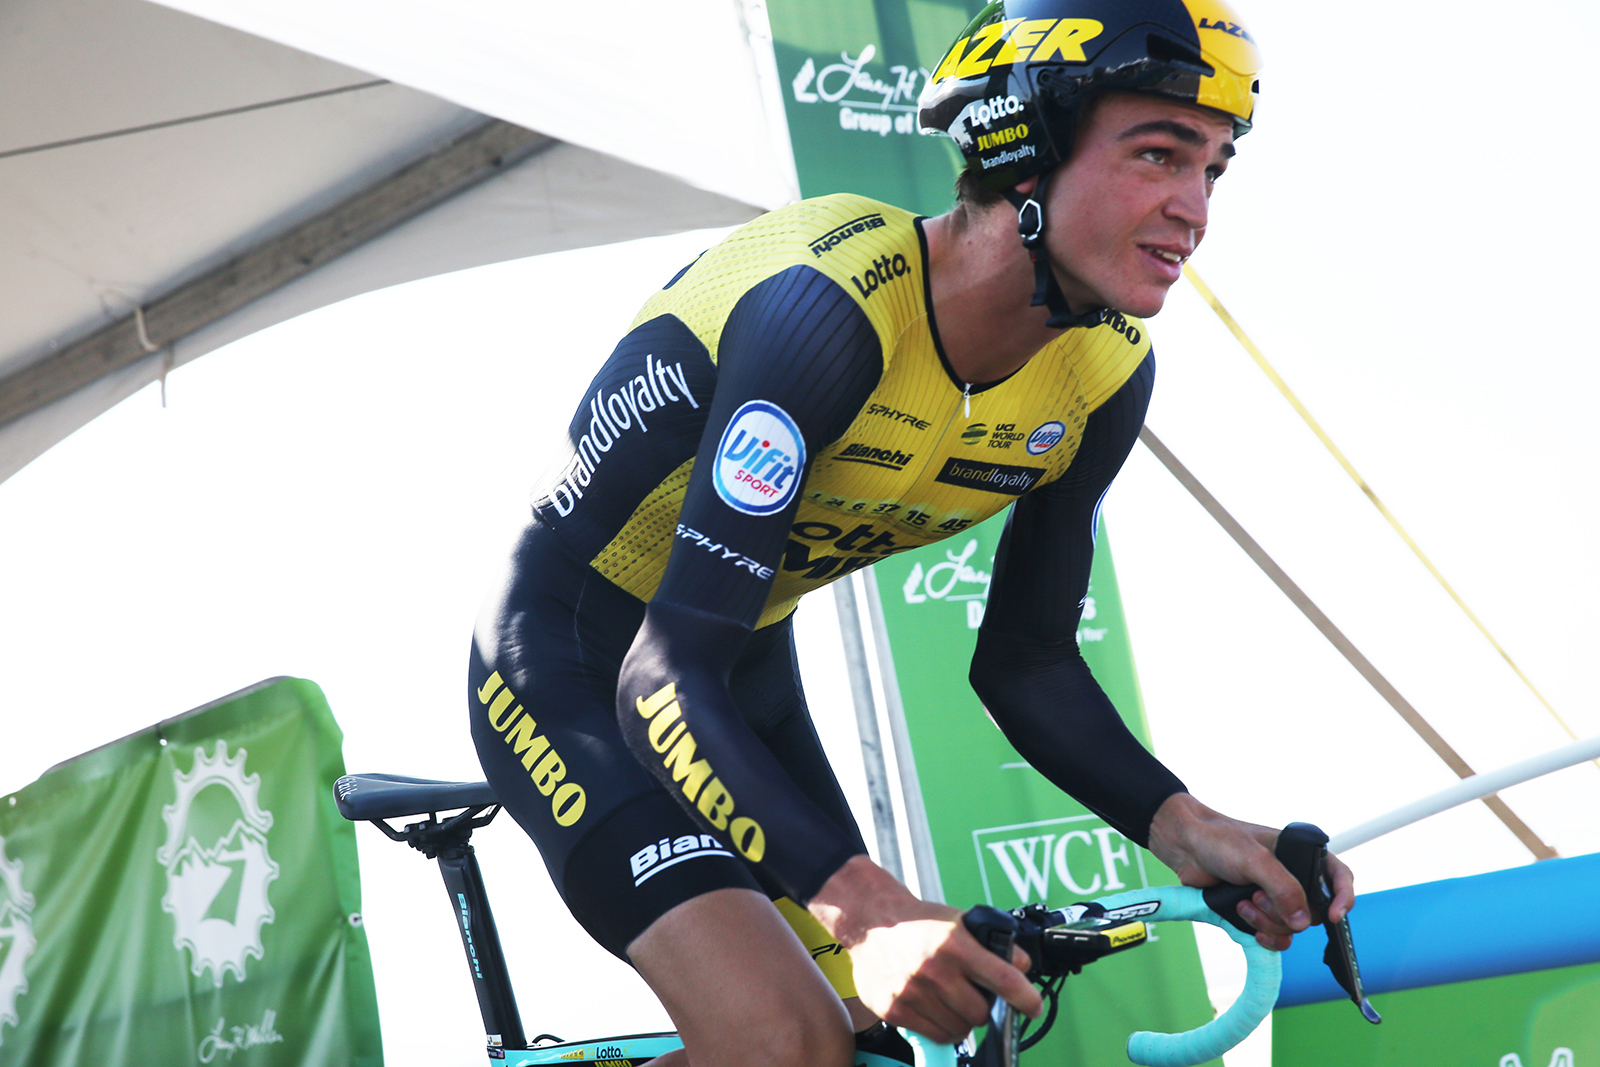 Sepp Kuss of Team Lotto NL-Jumbo at the start. 2018 Tour of Utah Team Prologue, August 6, 2018, St. George, Utah. Photo by Cathy Fegan-Kim, cottonsoxphotography.net